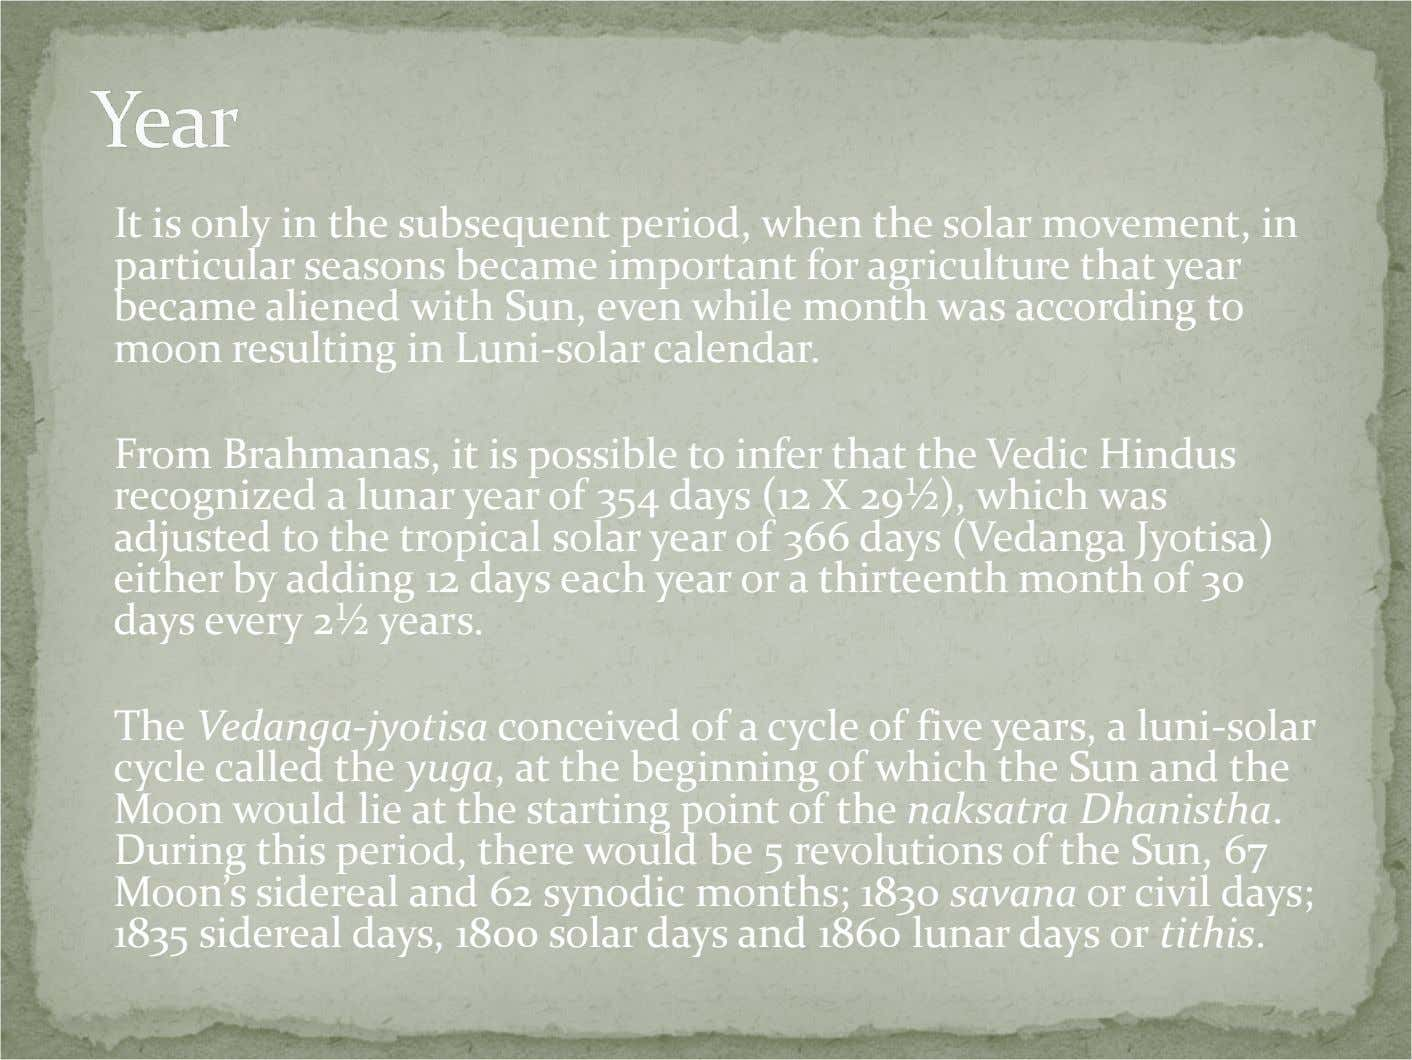 It is only in the subsequent period, when the solar movement, in particular seasons became